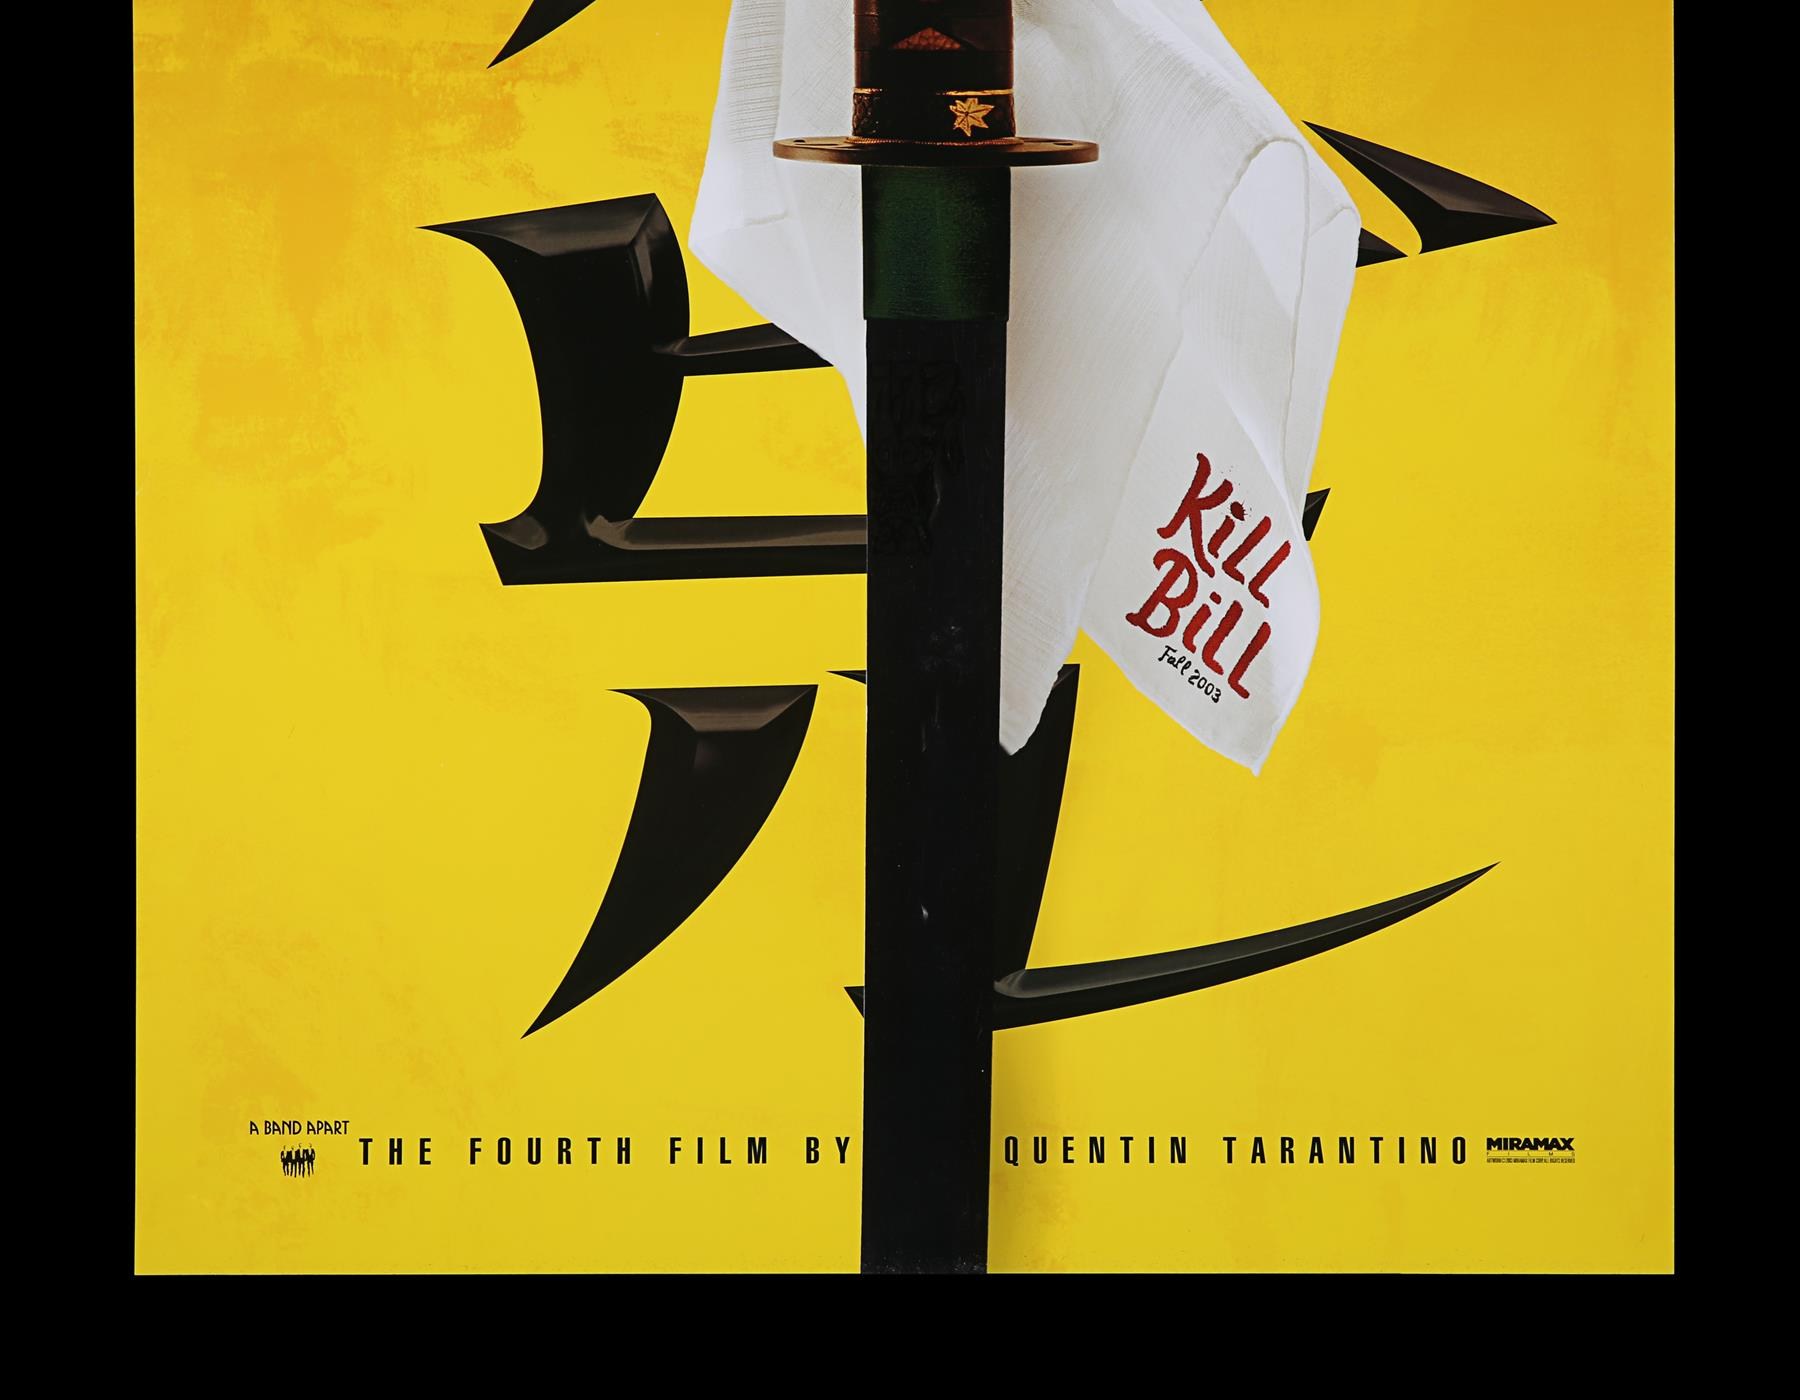 KILL BILL (2003) - US One-Sheet and Thai One-Sheet, 2003 - Image 9 of 10